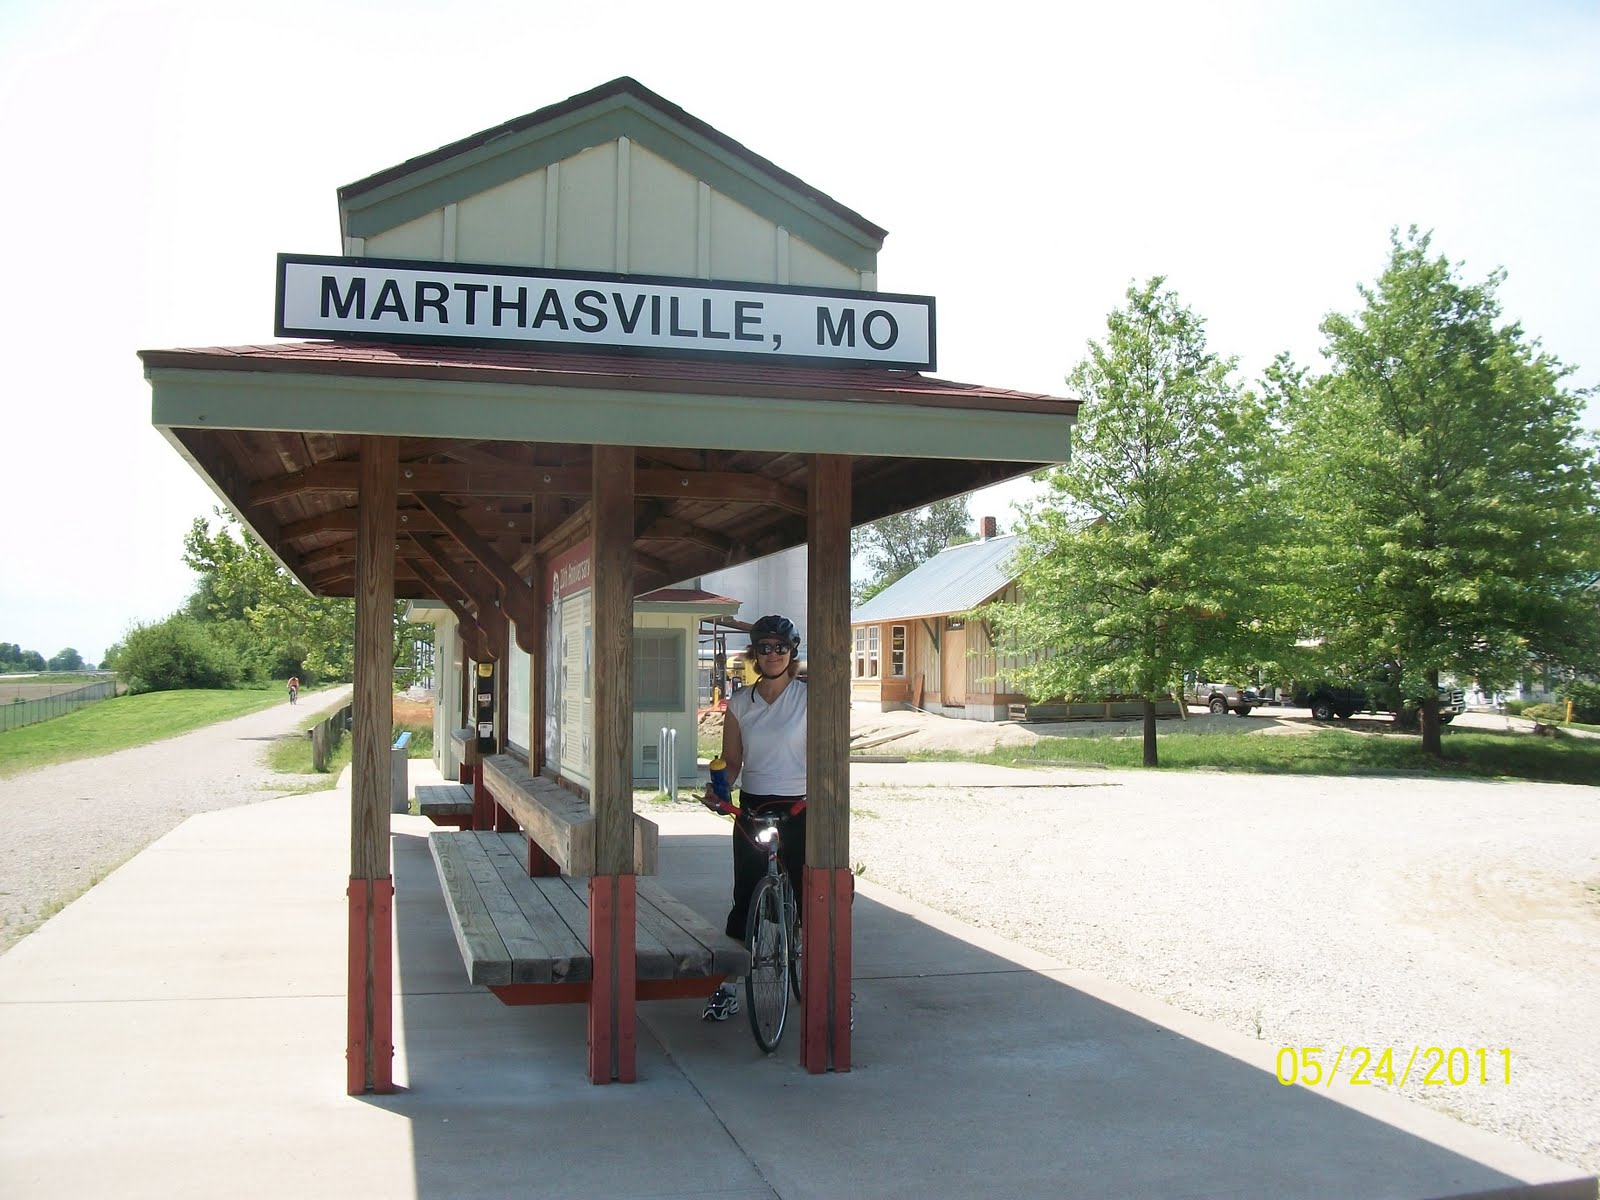 Marthasville Missouri  Simple English Wikipedia the